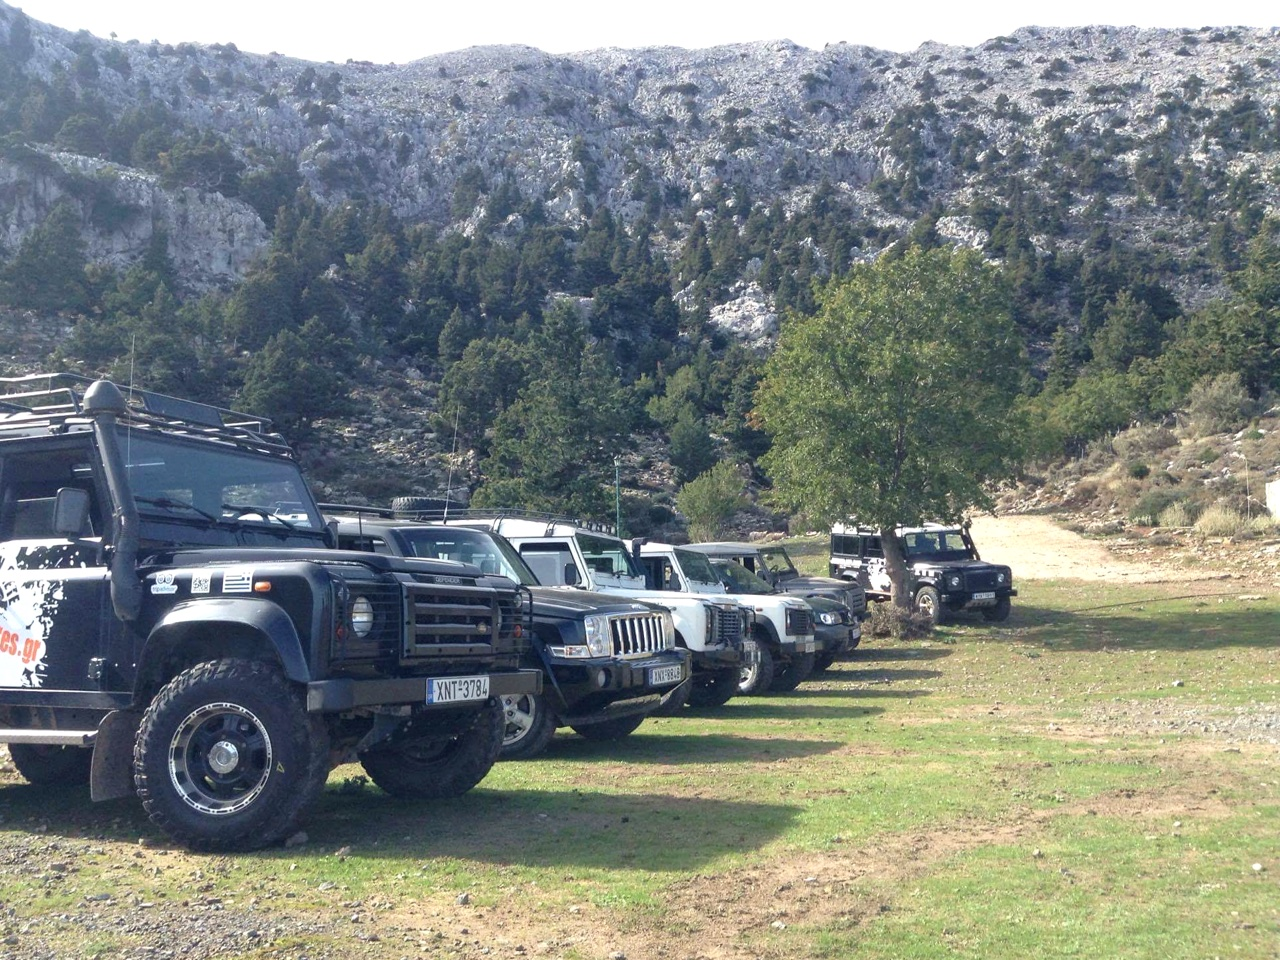 Explore Crete with all your Senses, a Jeep Safari Tour to rethymno mountains, cooking lesson axos, cheese making axos village, best jeep safari starting from chania town, activities chania crete, activities rethimno crete